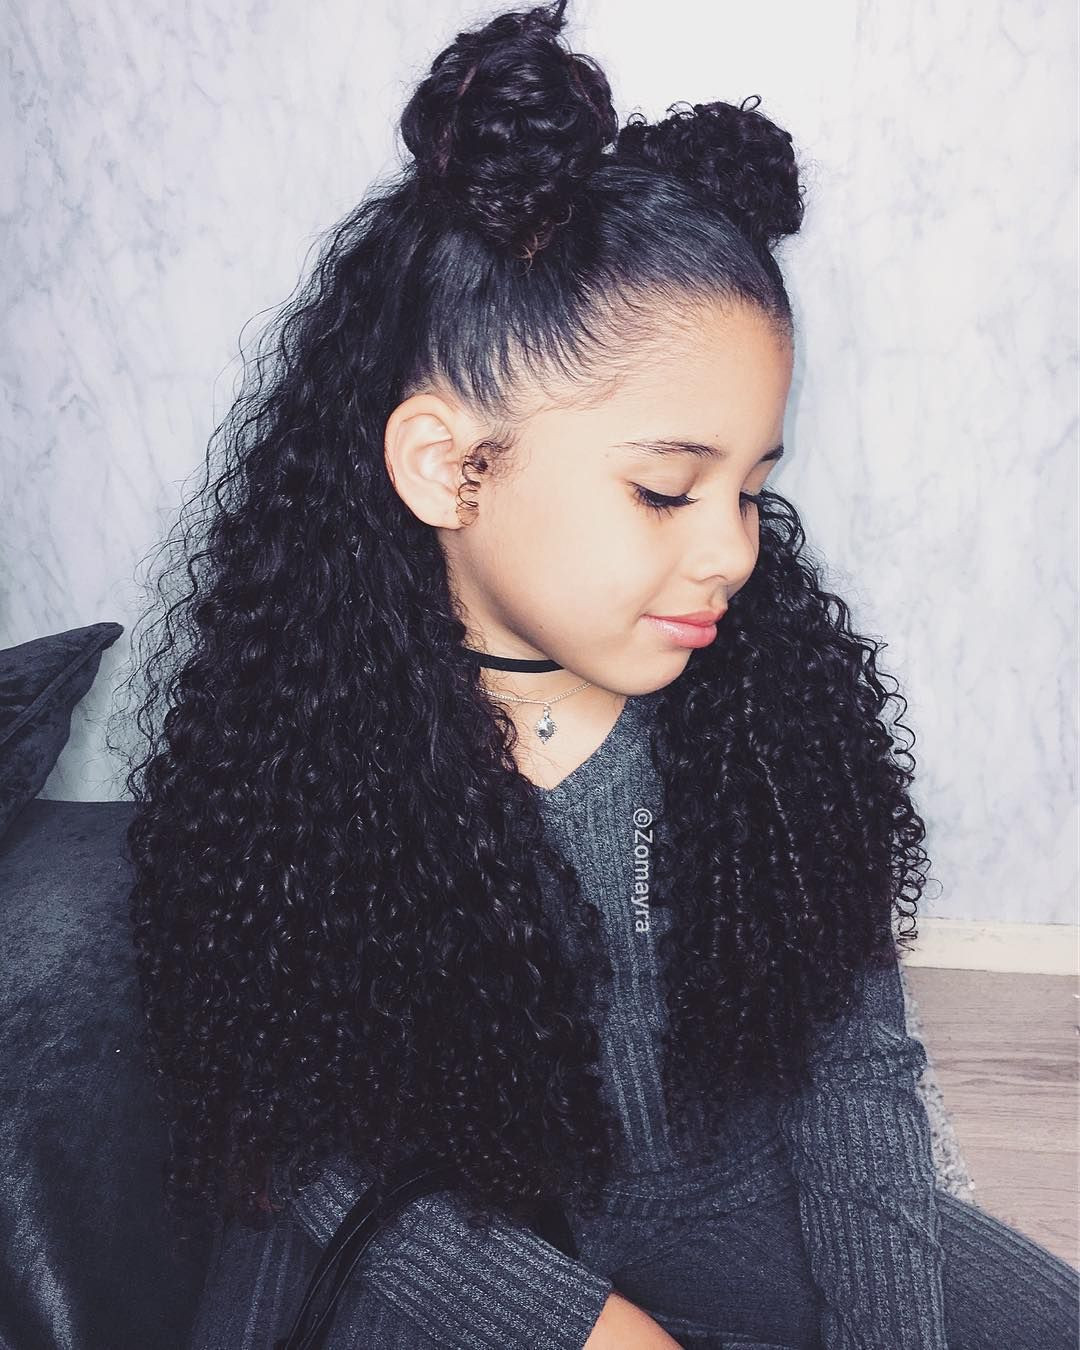 Best ideas about Cute Hairstyles For Mixed Girls . Save or Pin Pin by omanee gipson on FUTURE in 2019 Now.